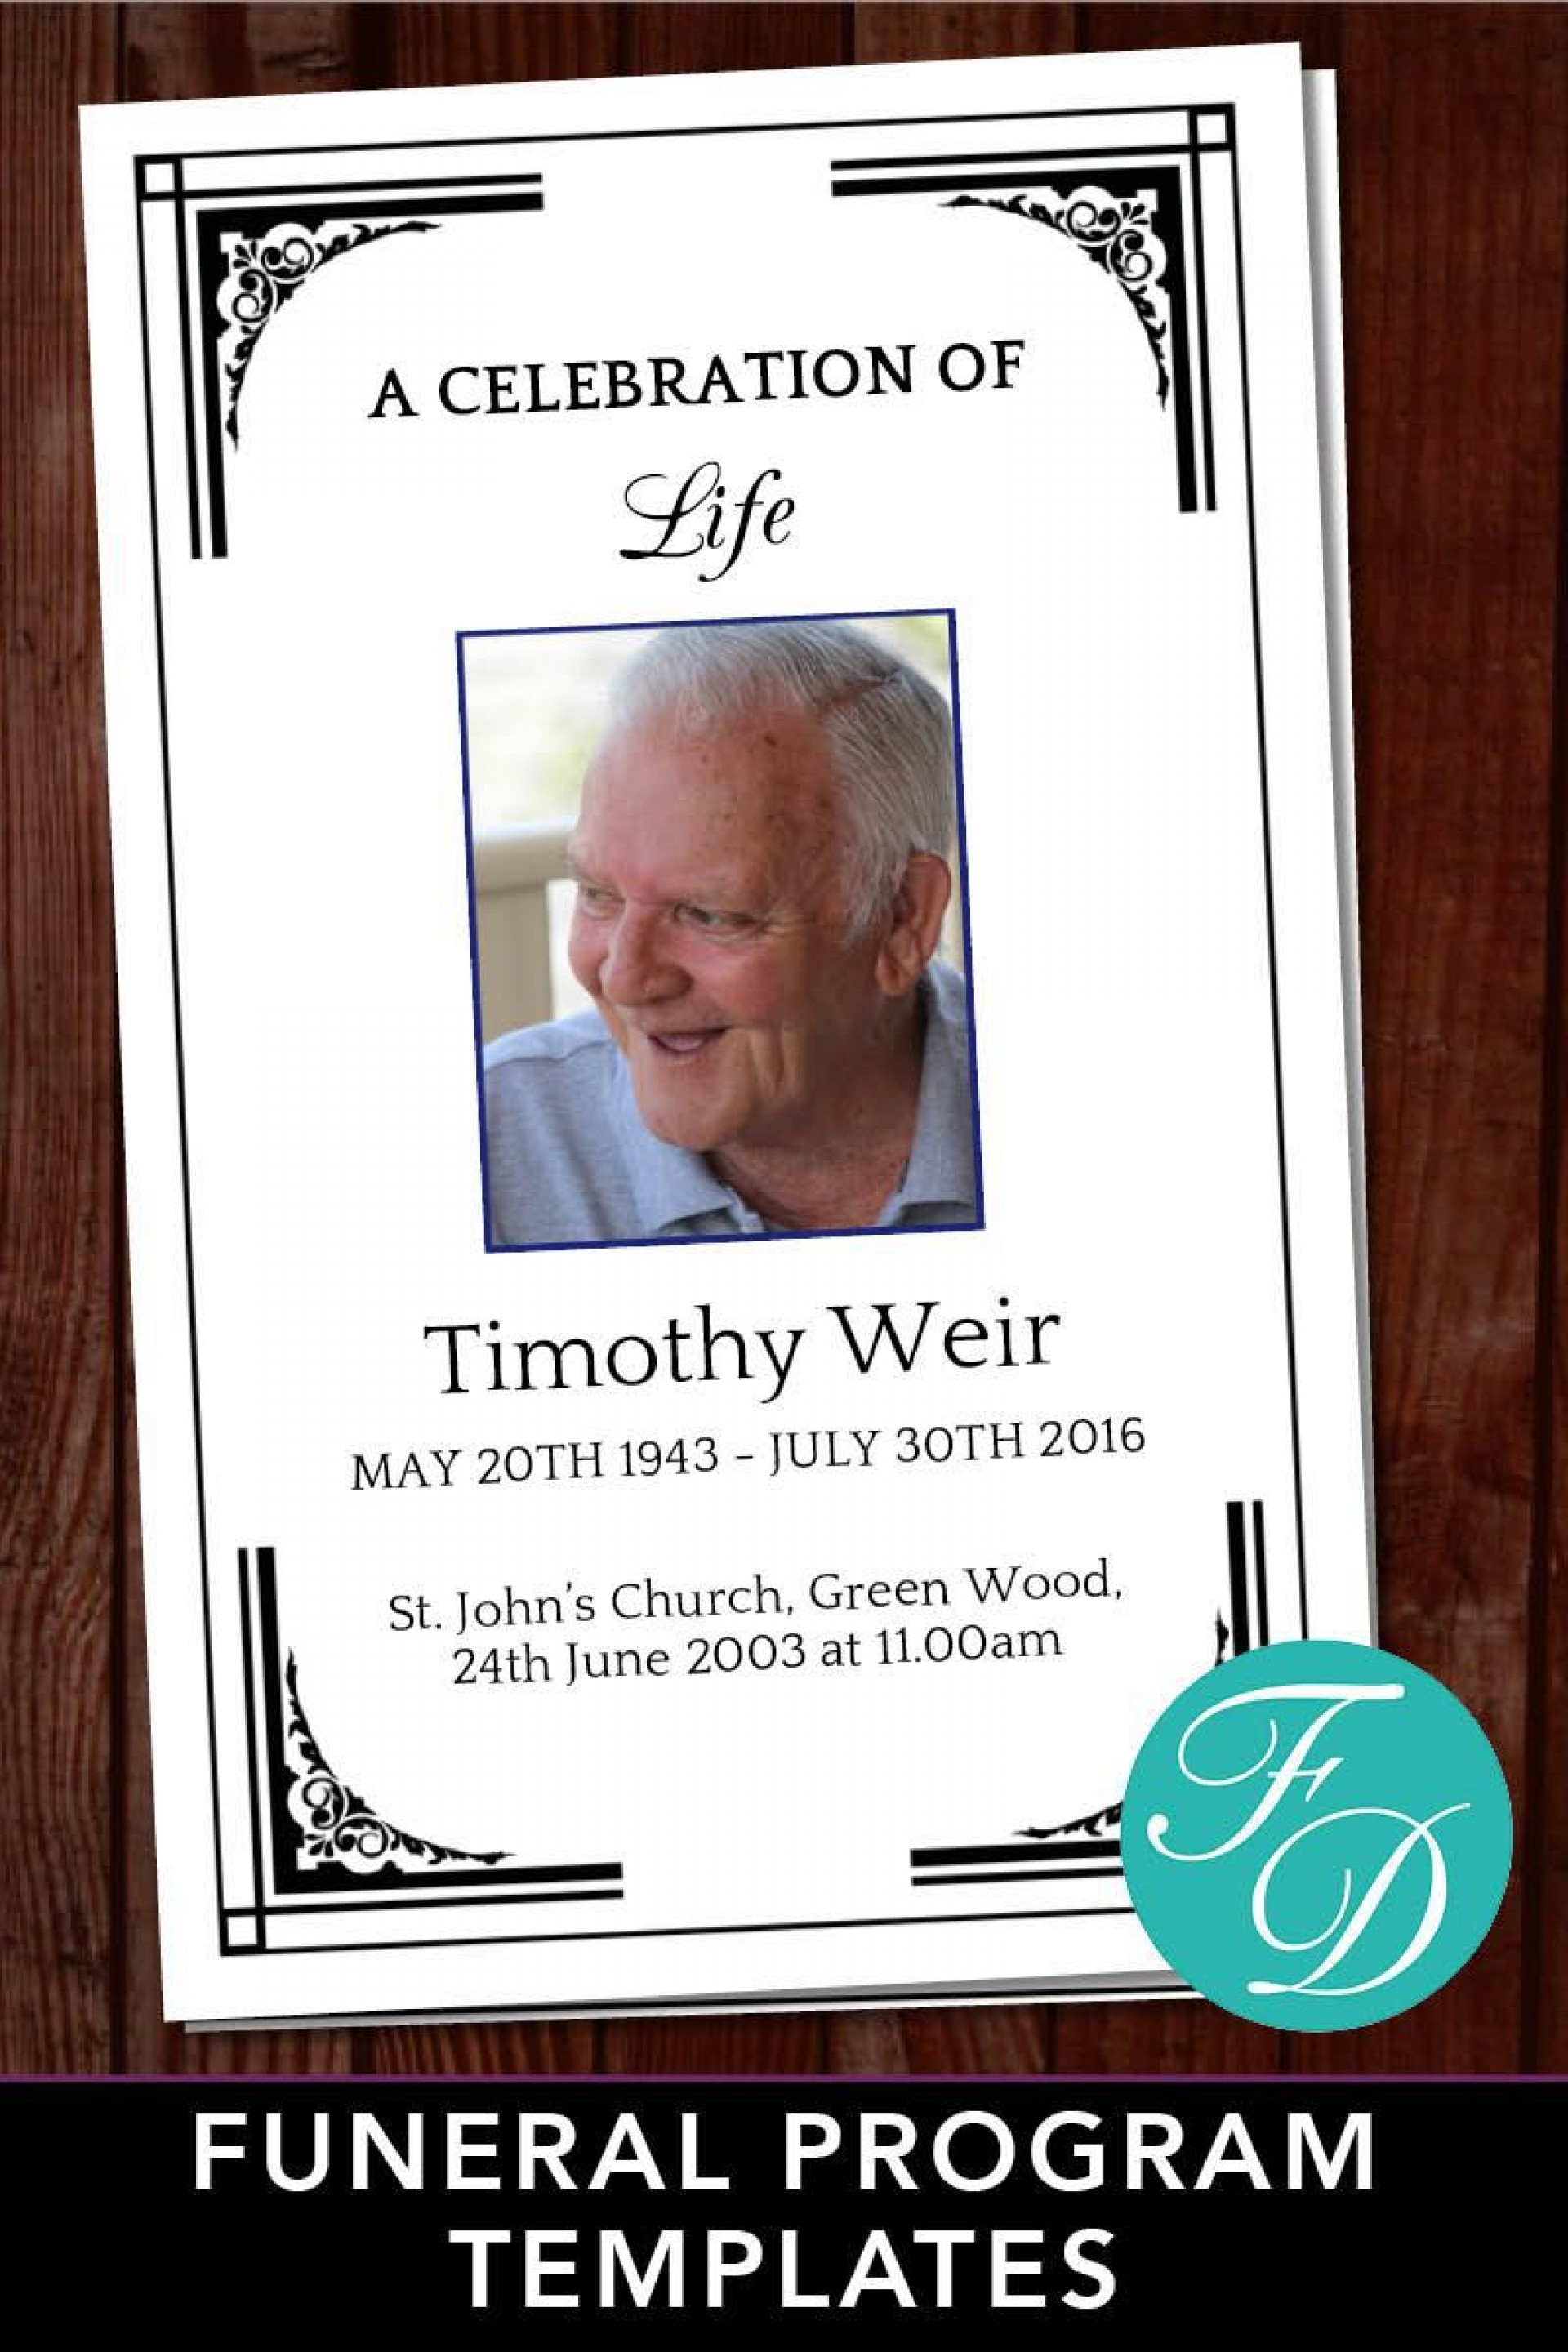 003 Astounding Free Celebration Of Life Program Template Download Concept 1920